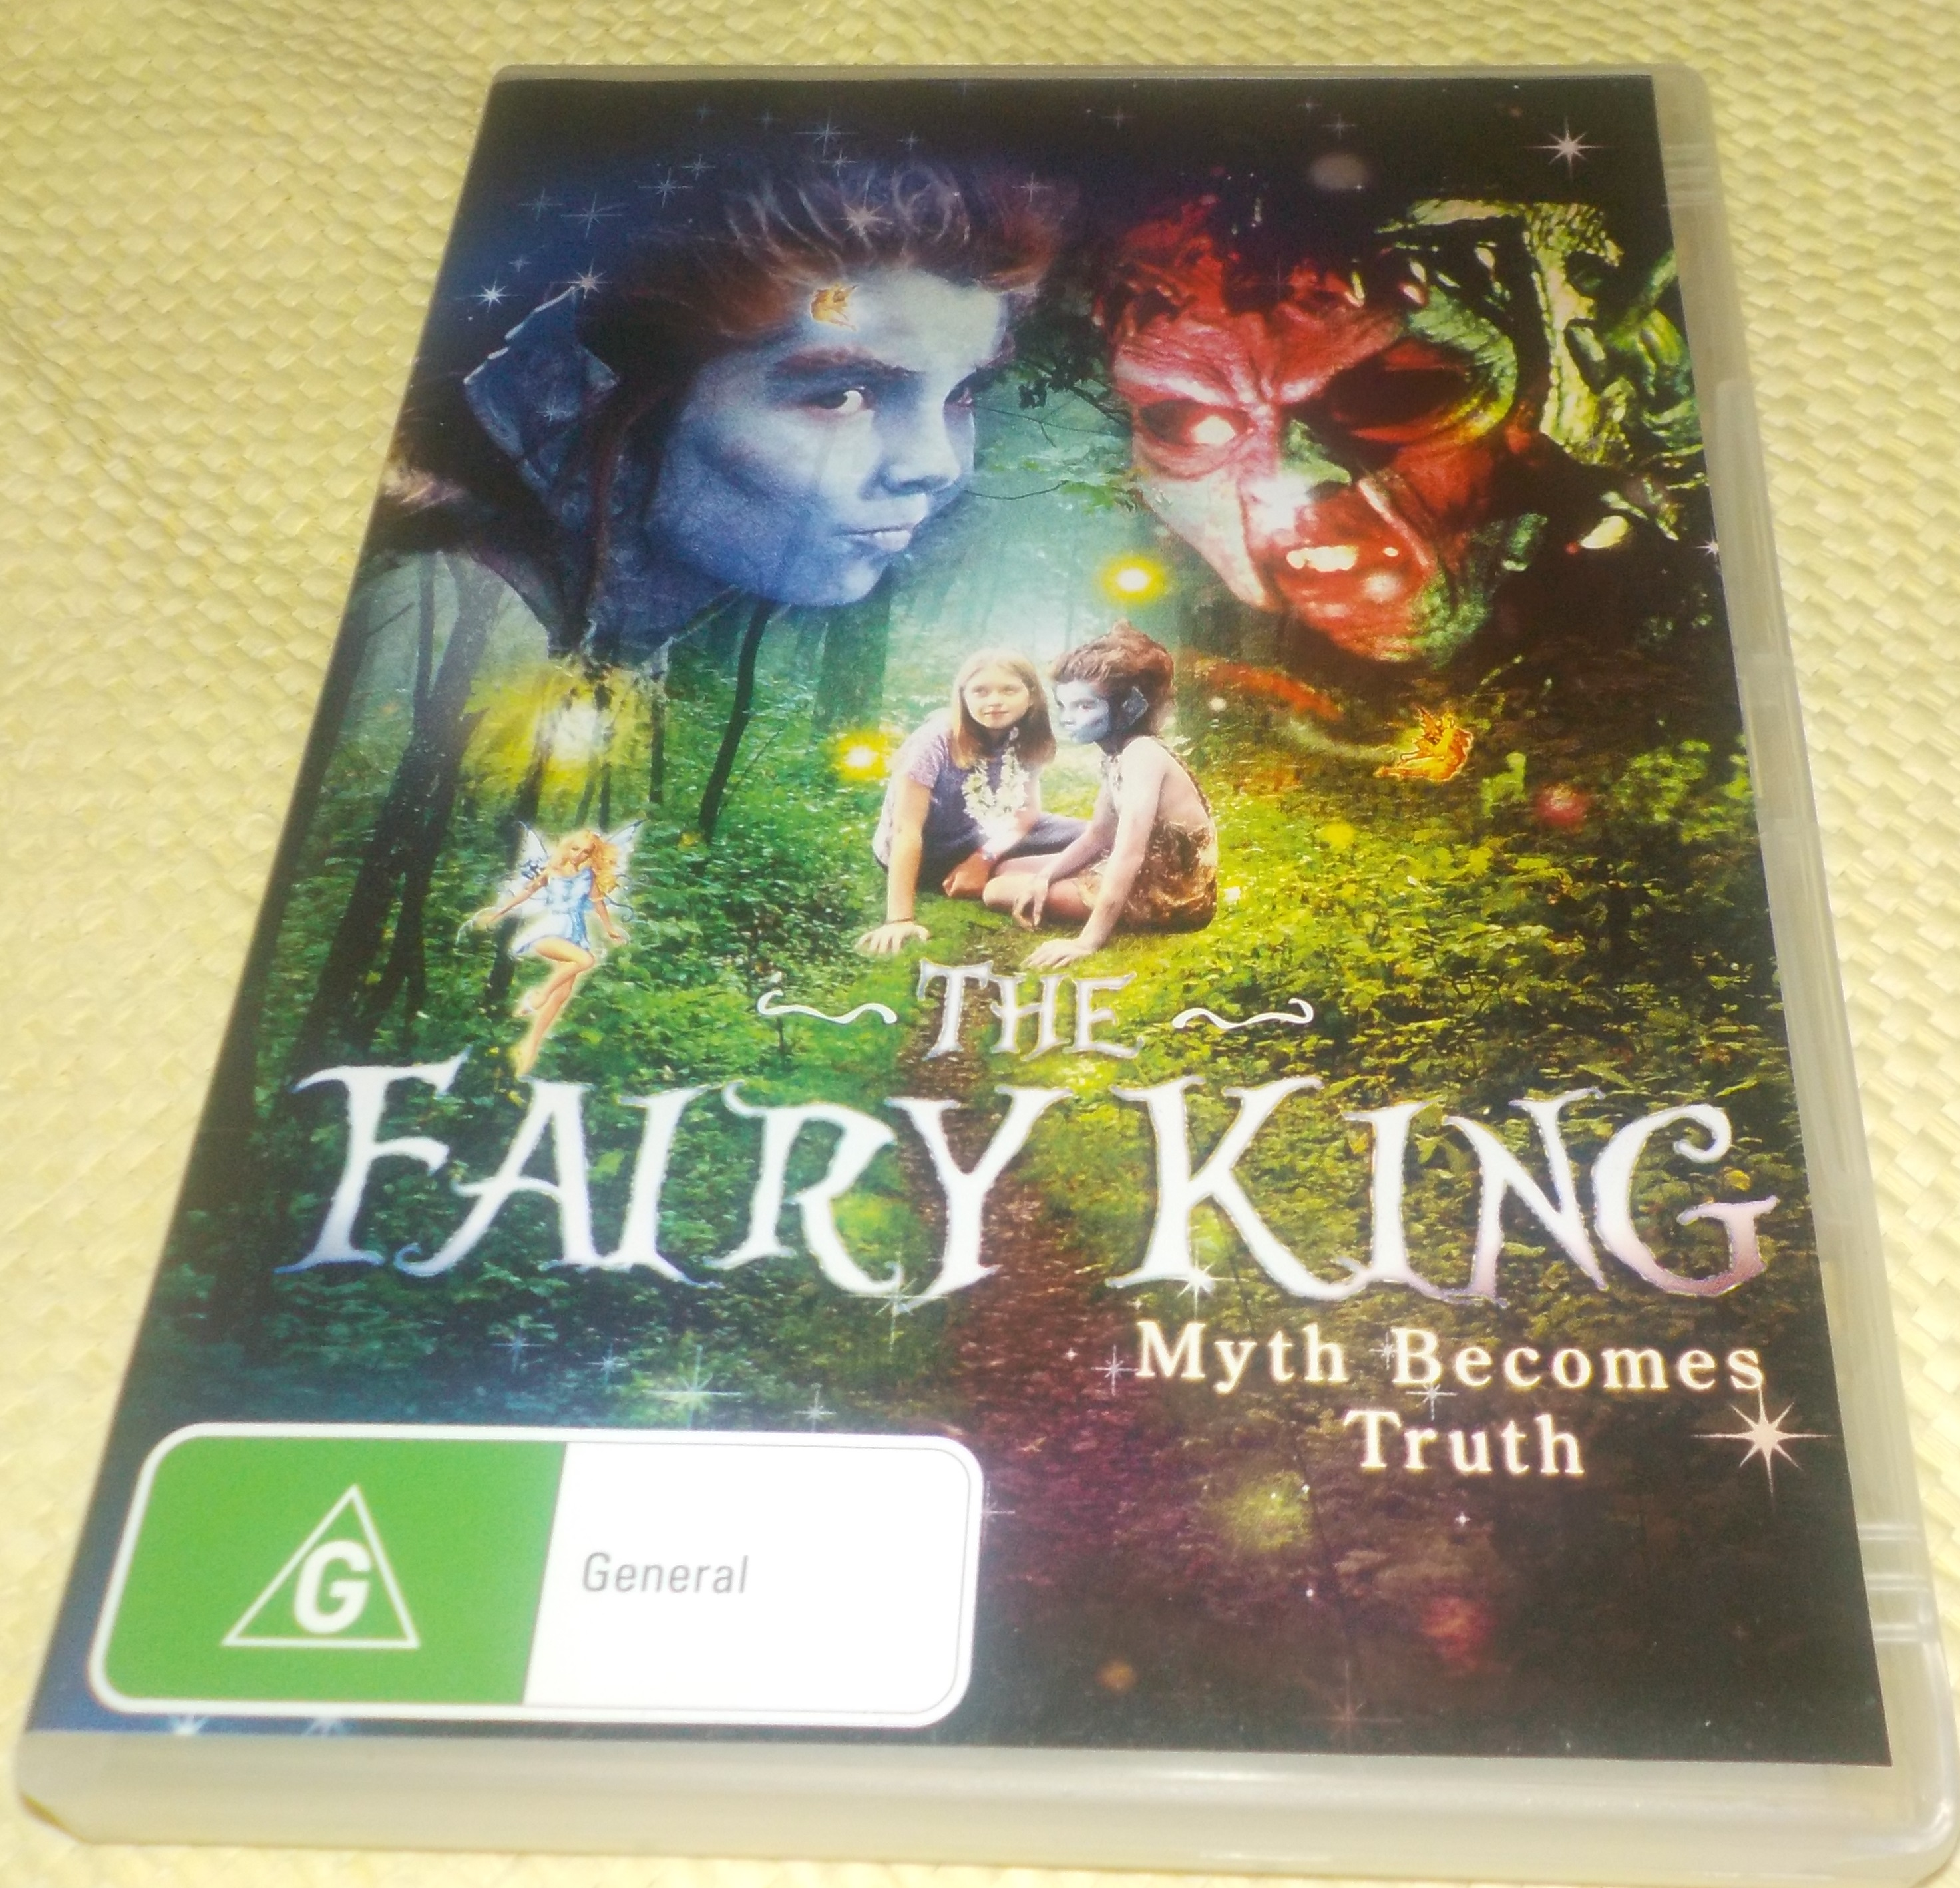 The Fairy King: Myth Becomes Truth - G - 89 mins - Used DVD Video